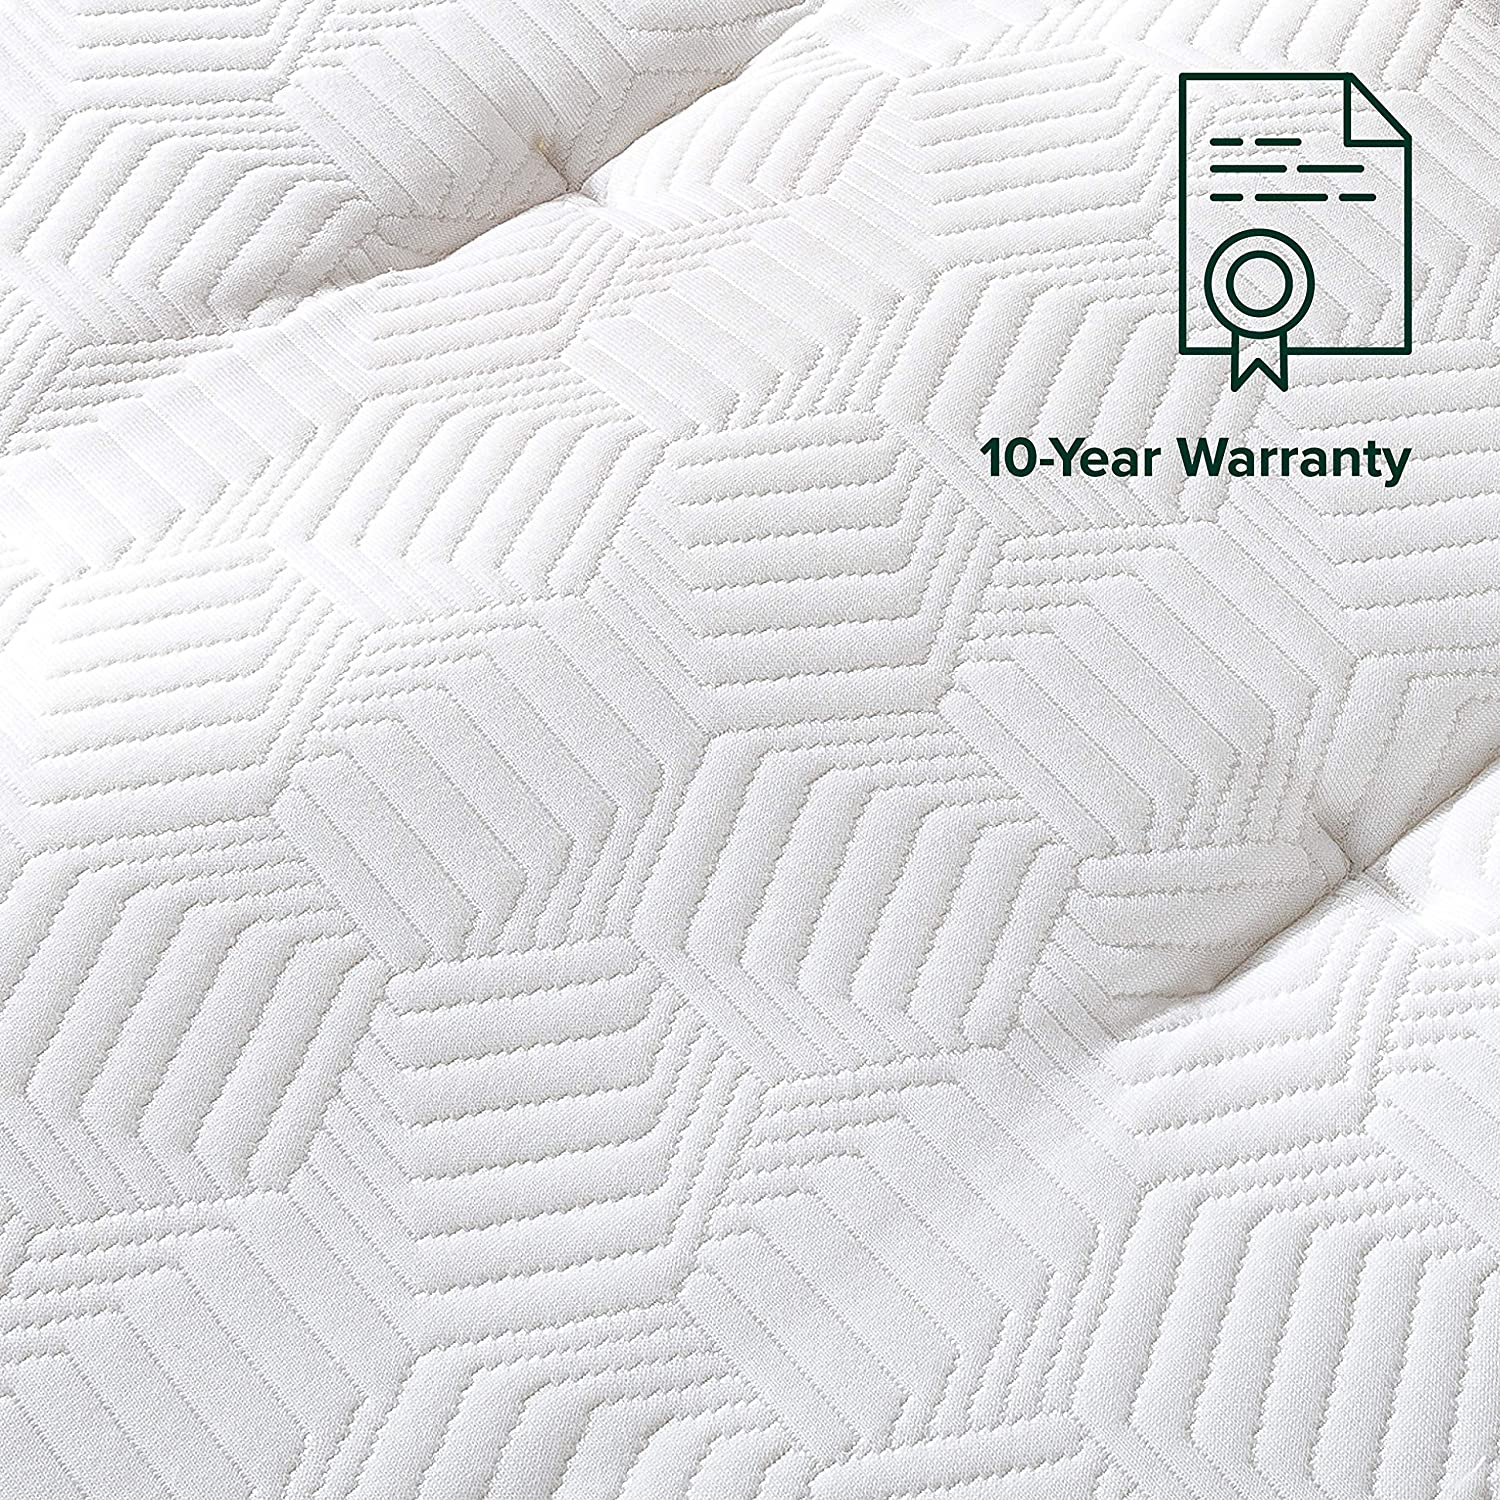 ZINUS 12 Inch Euro Top Pocket Spring Hybrid Mattress / Pressure Relief / Pocket Innersprings for Motion Isolation / Bed-in-a-Box, Queen: Furniture & Decor